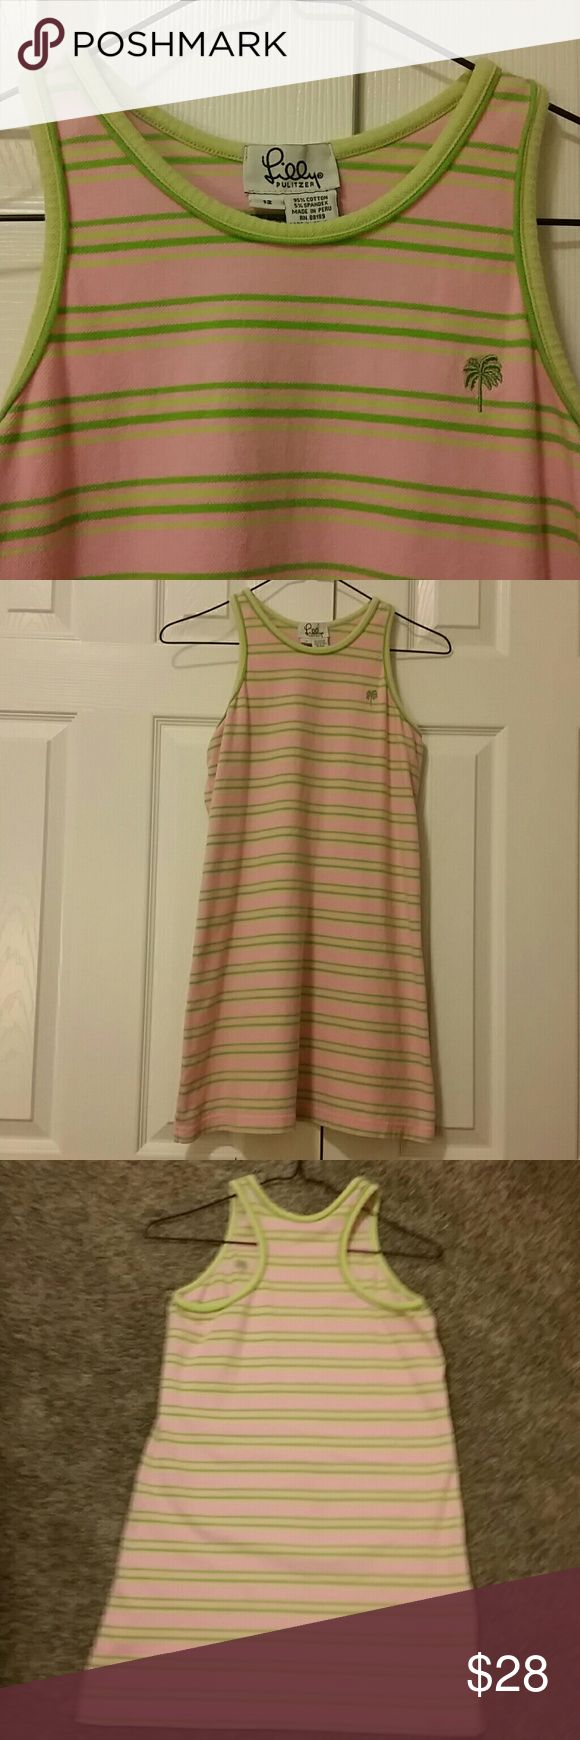 Vintage Lilly Pulitzer Sporty Girls  Tennis Dress Pretty pink racer back dress. Dark green and light green stripes. Green palm tree insignia on chest. Cotton and spandex. Size 12 girls. Lilly Pulitzer Dresses Casual